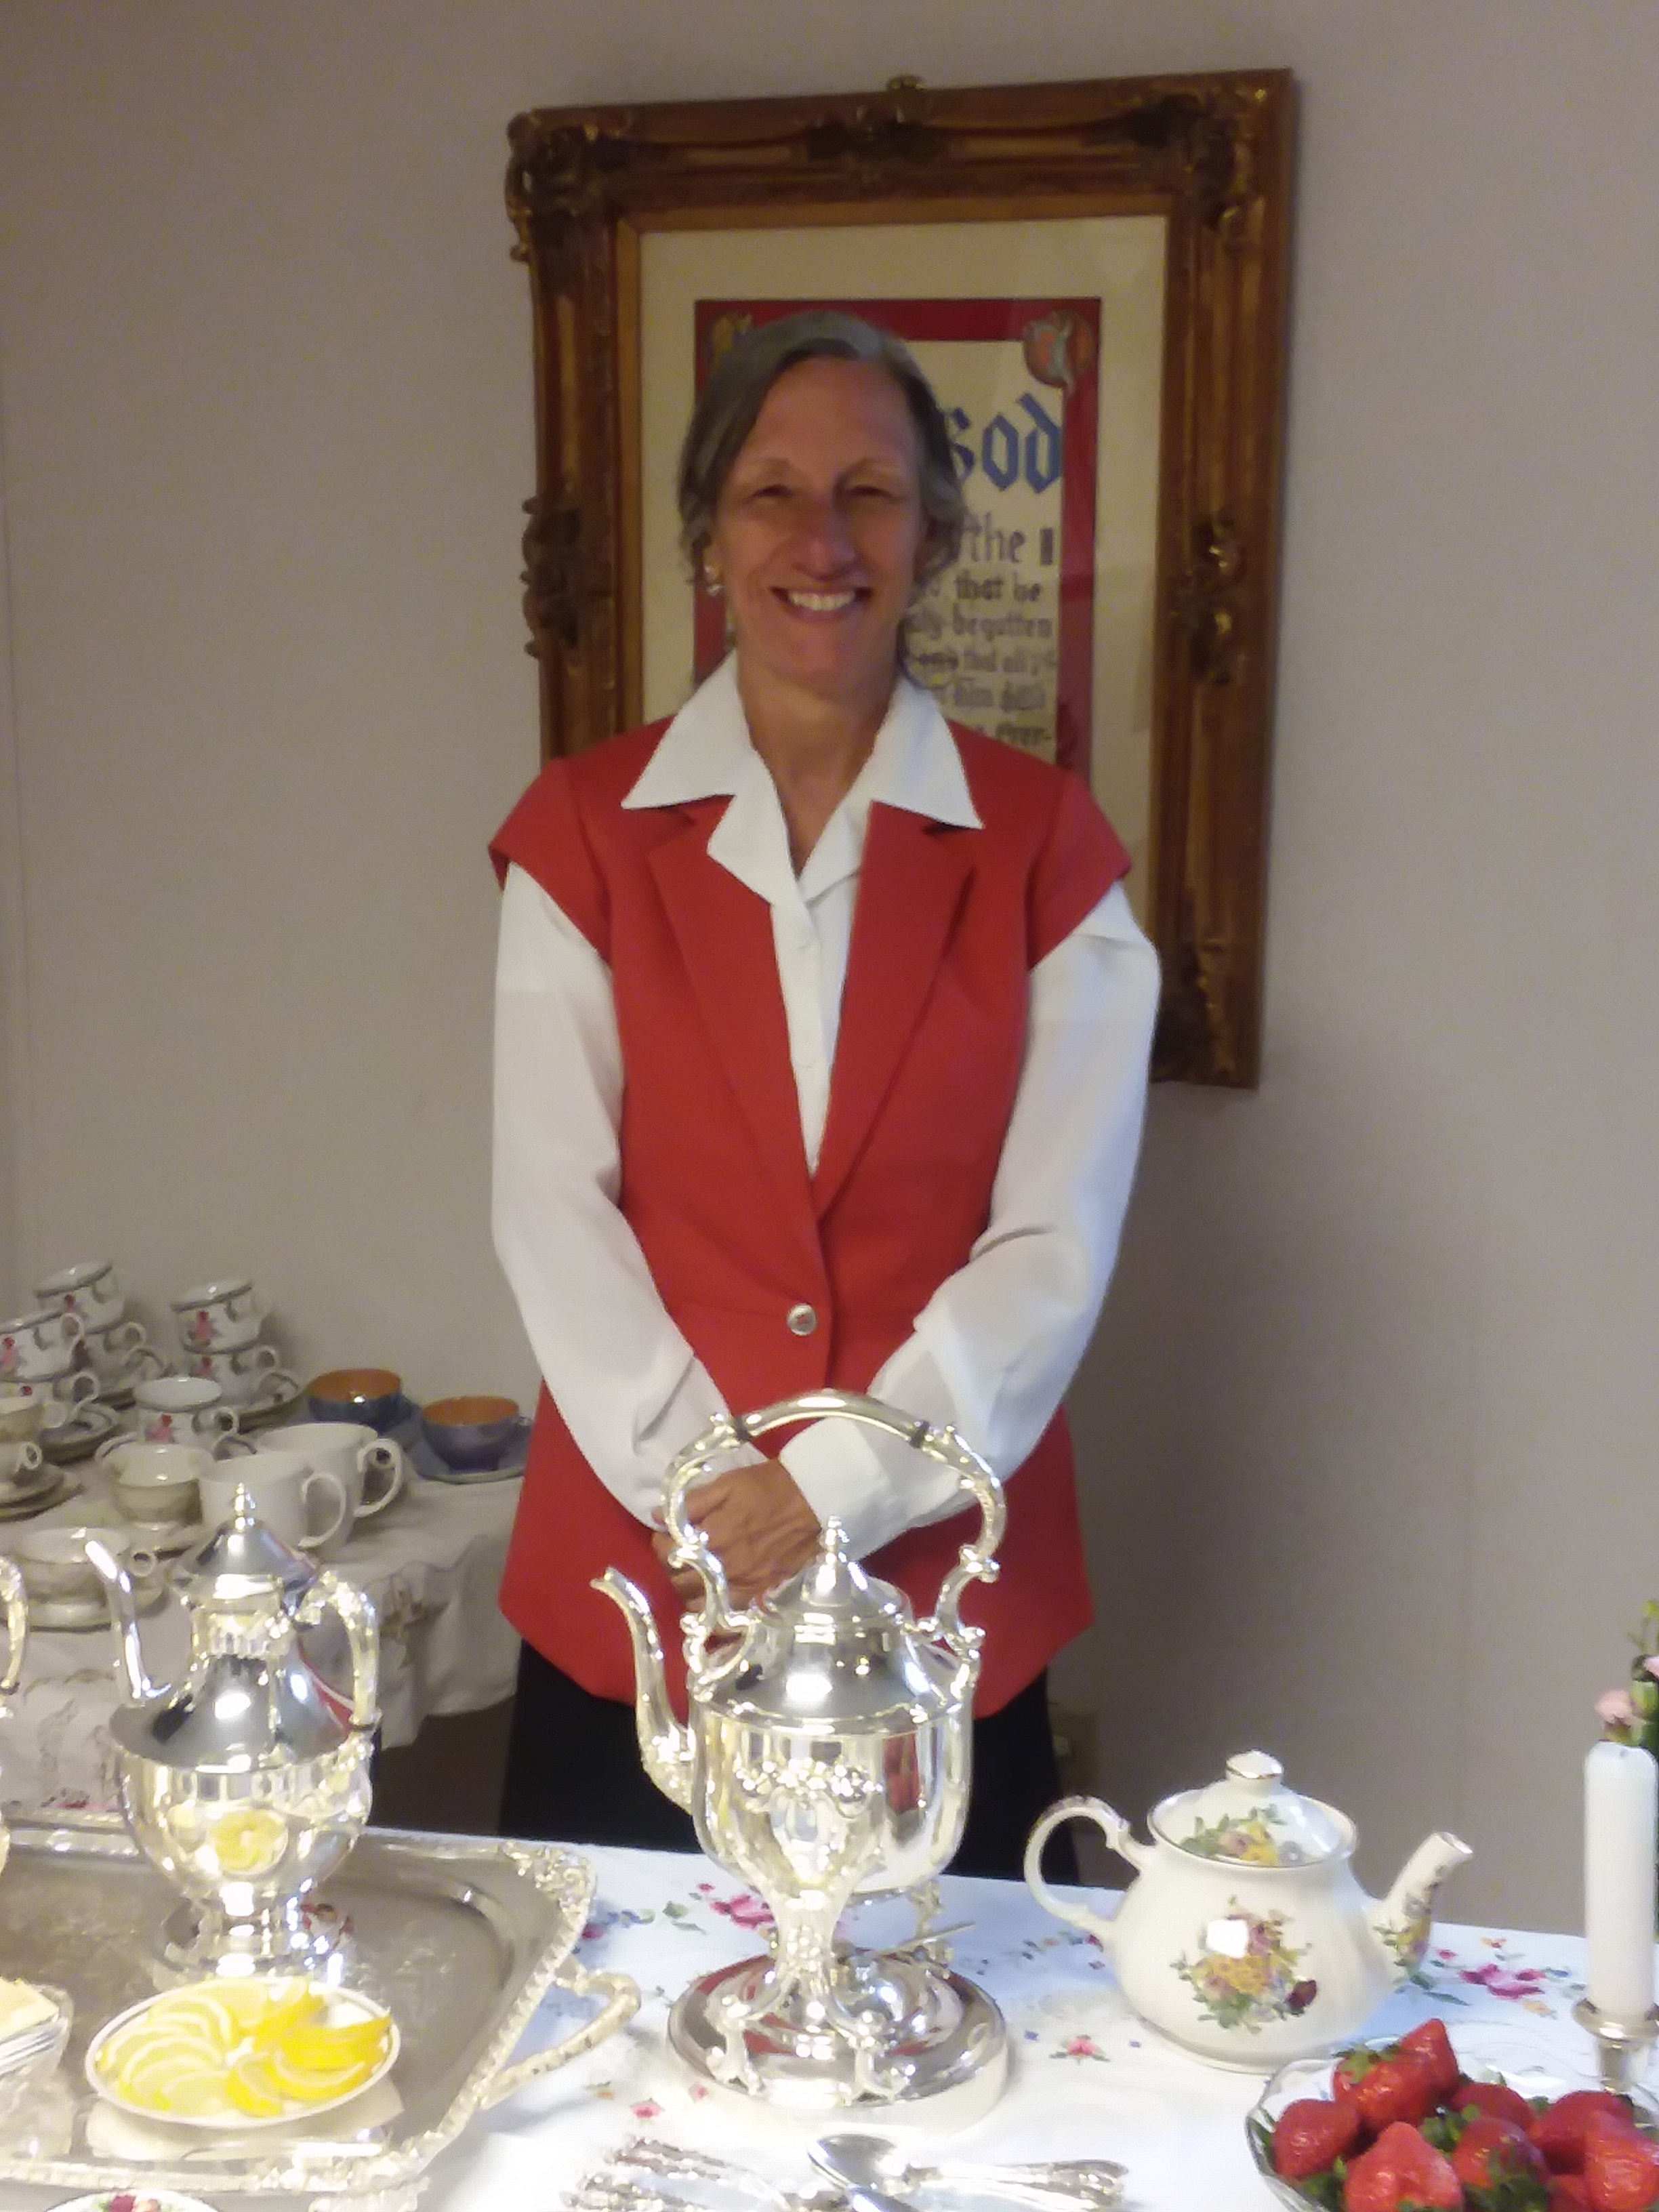 Mary Boitnott serving tea and coffee at the reception for Bishop Morse